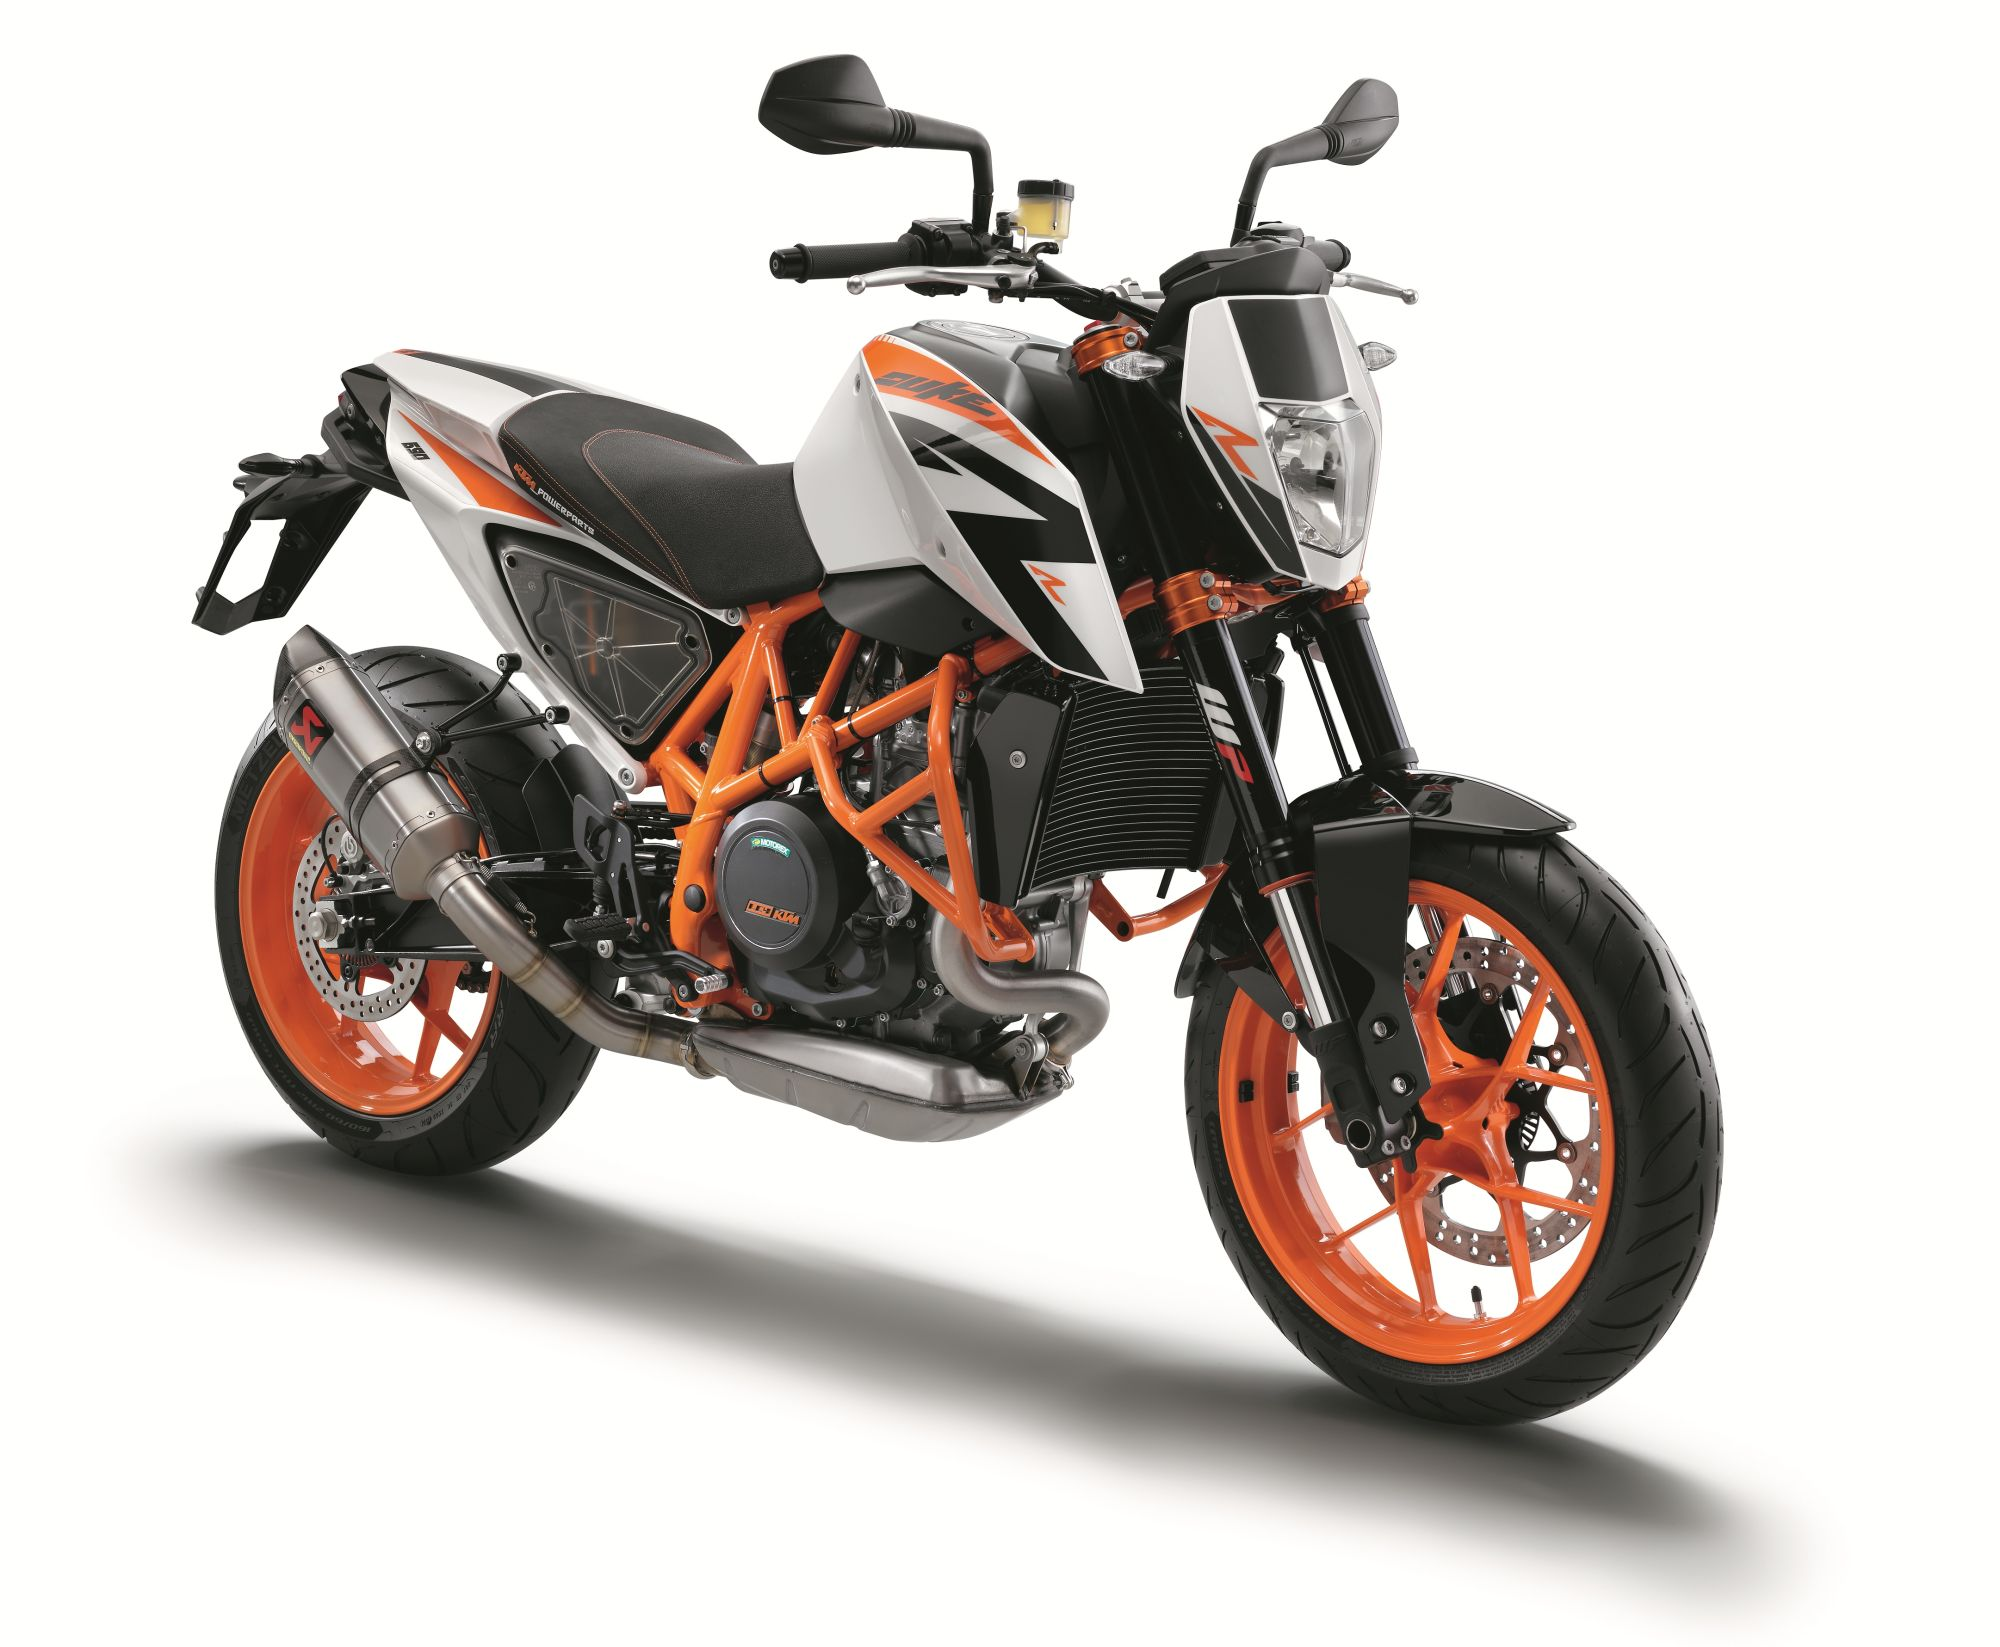 2015 Duke 690 R Html Autos Post